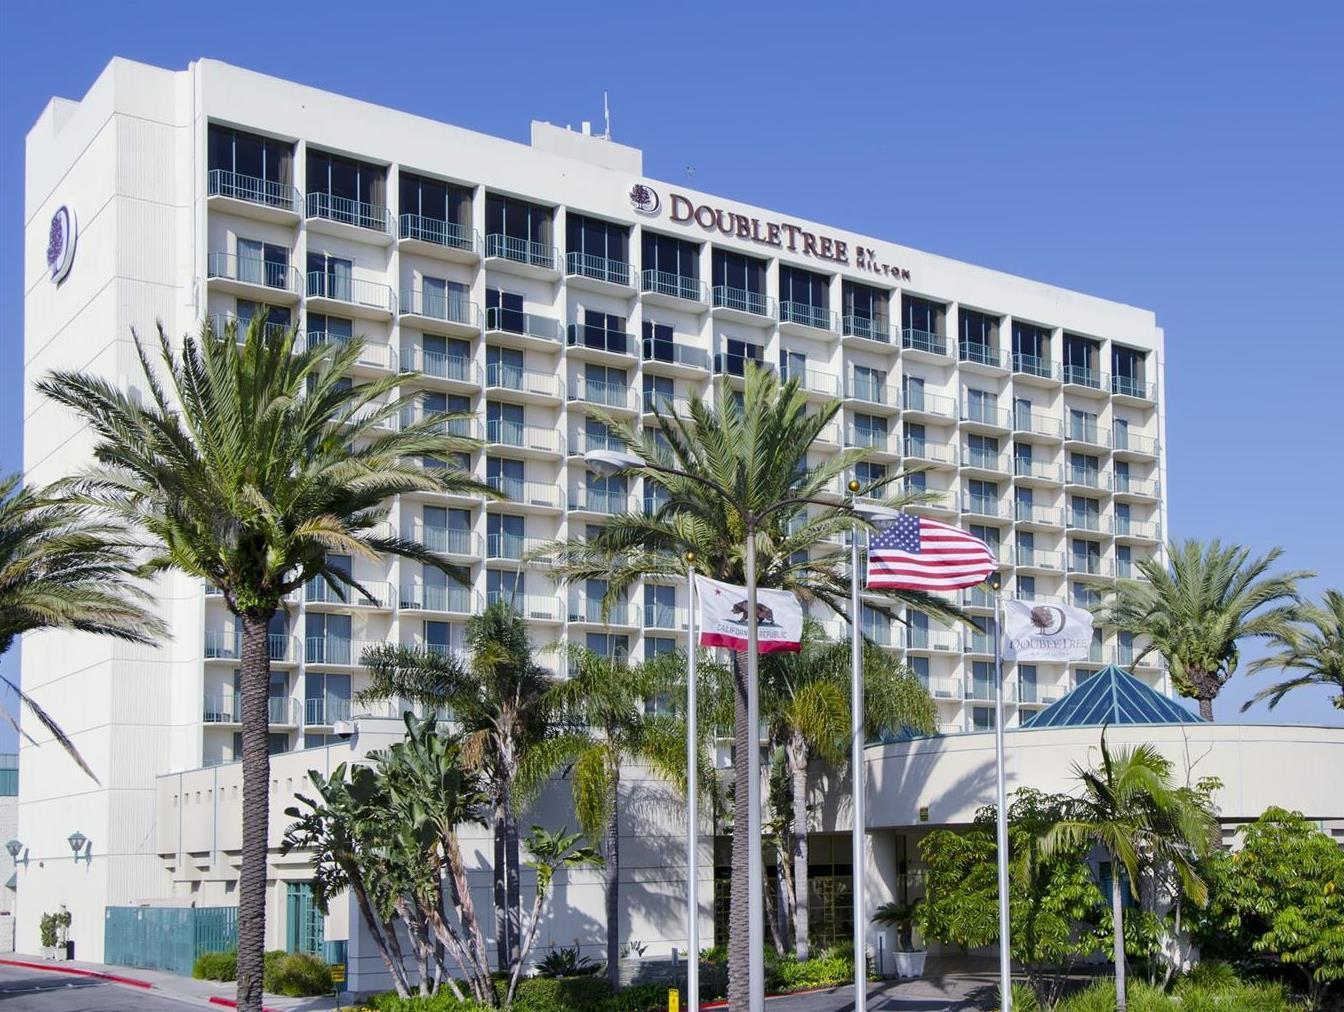 Doubletree By Hilton Torrance South Bay Hotel